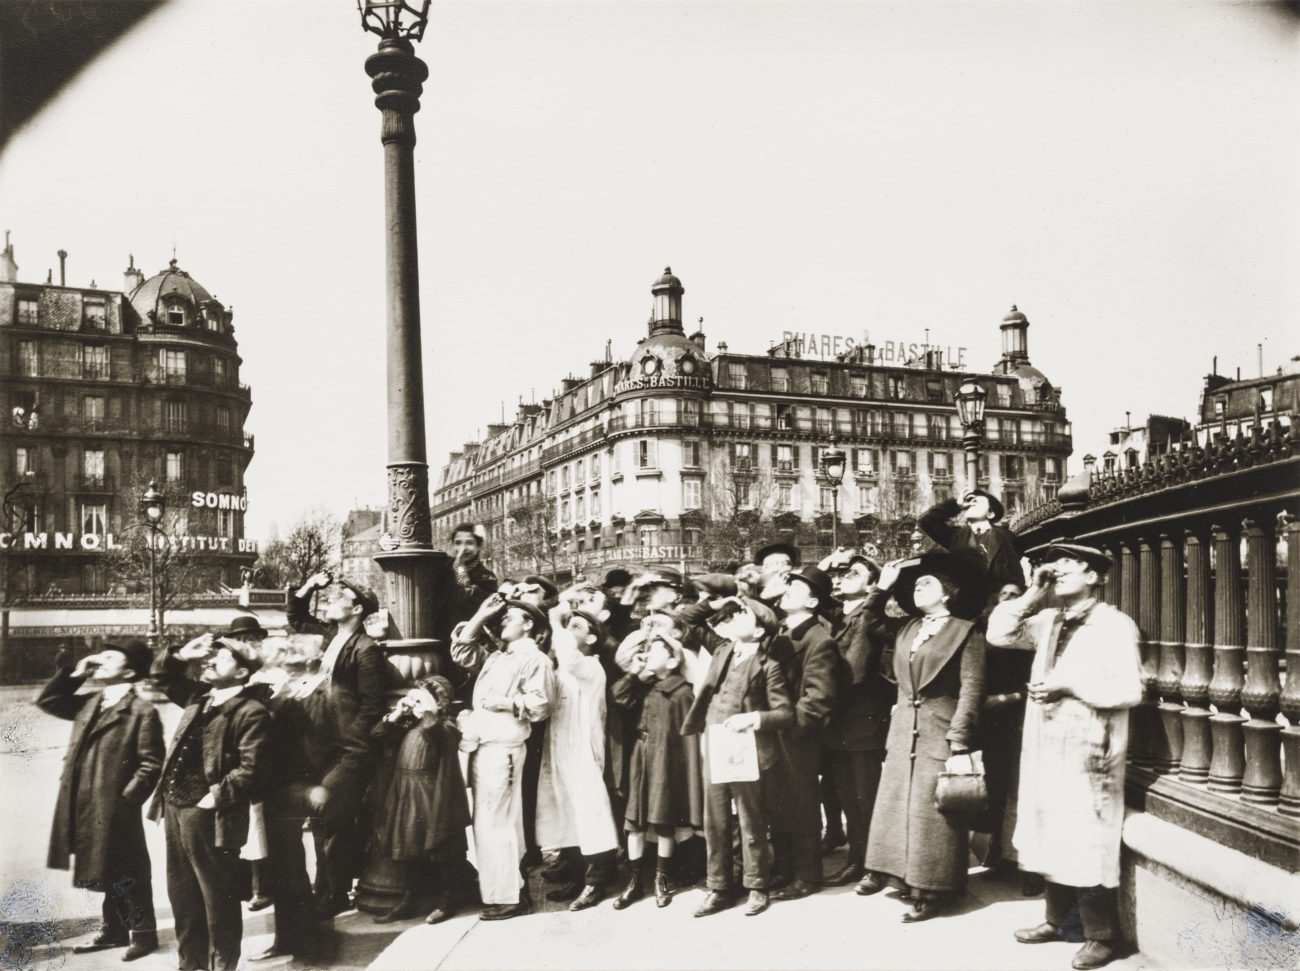 a crowd of people in 19th century dress gather on the streets of paris and look up at the sky through viewfinders during a solar eclipse